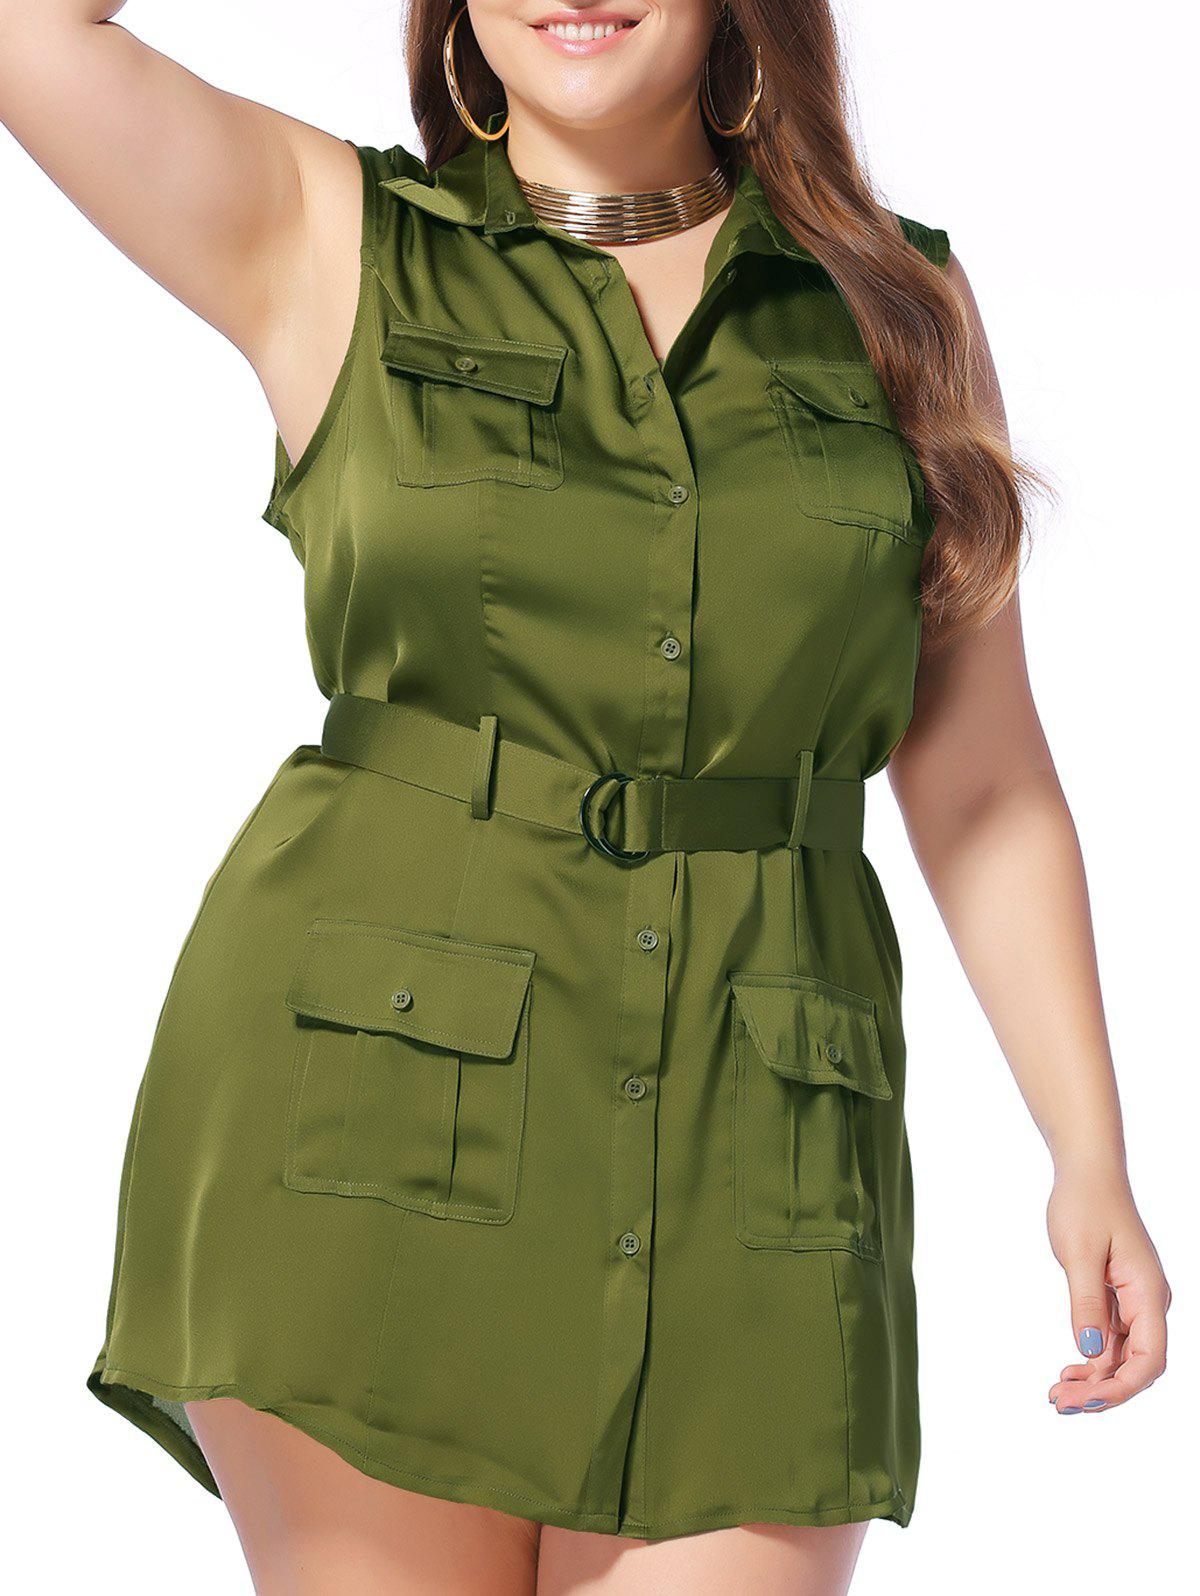 Military Style Plus Size Pockets Design Sleeveless Women's Shirt Dress - ARMY GREEN 5XL